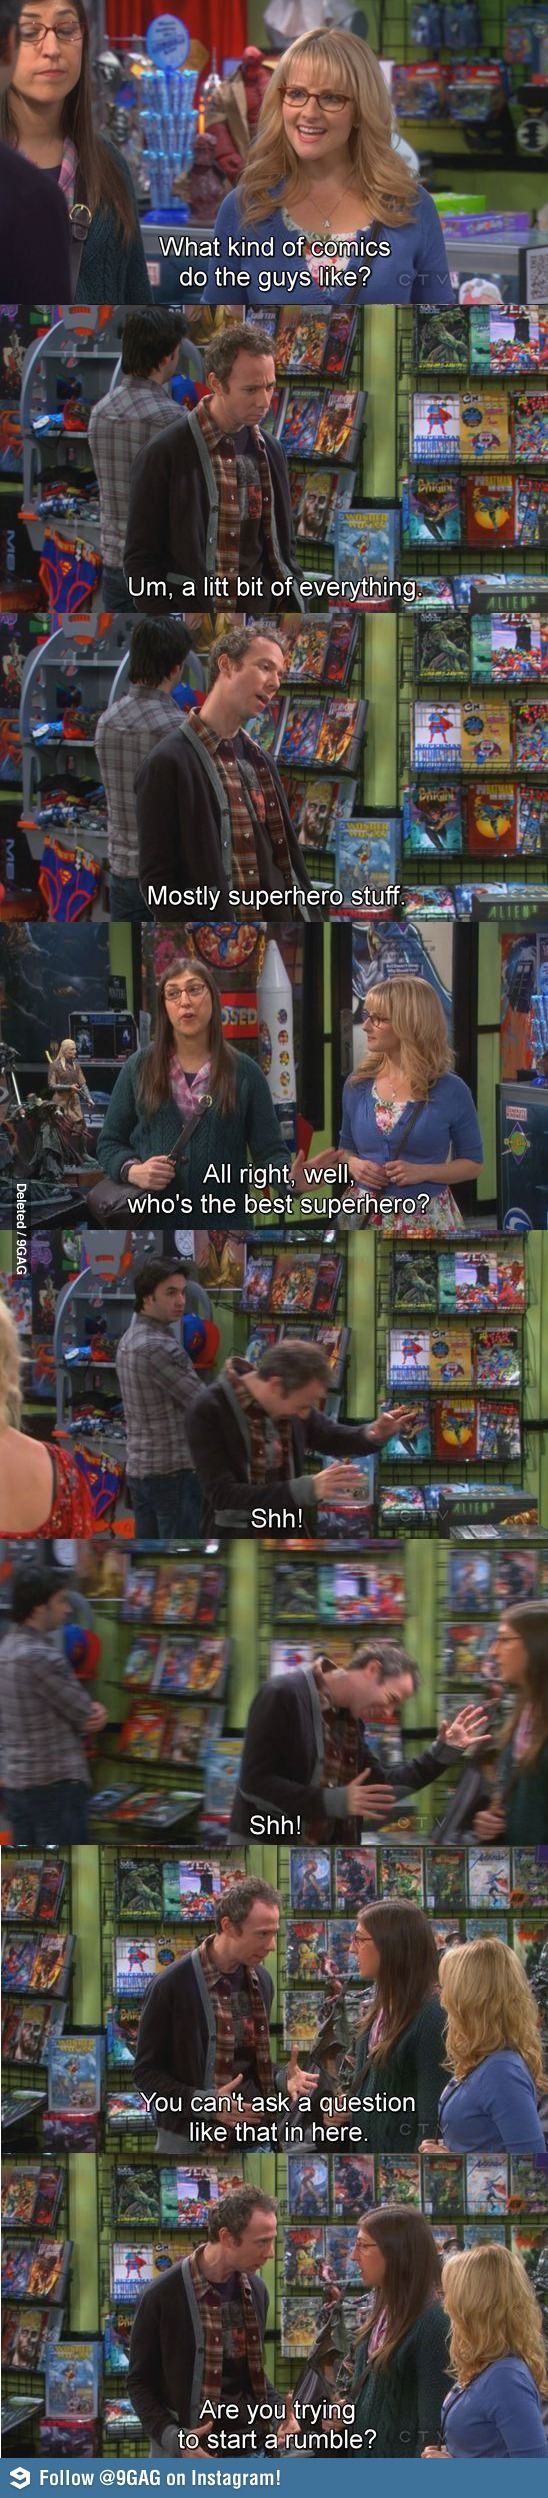 but really. don't ask a question like that in a comic store